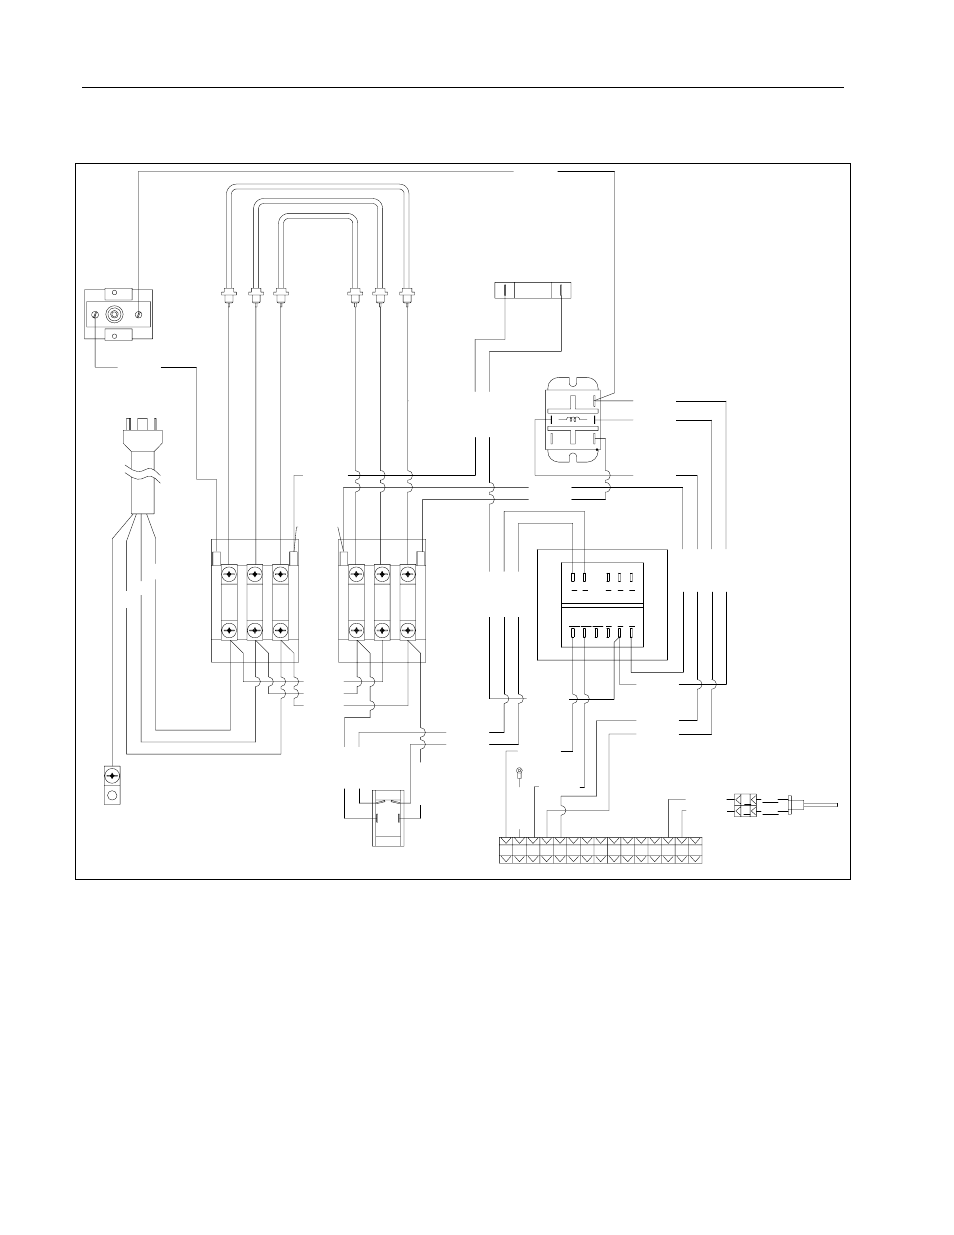 hight resolution of 2 wiring diagram 3 phase frymaster dean sr114e user manual page 9